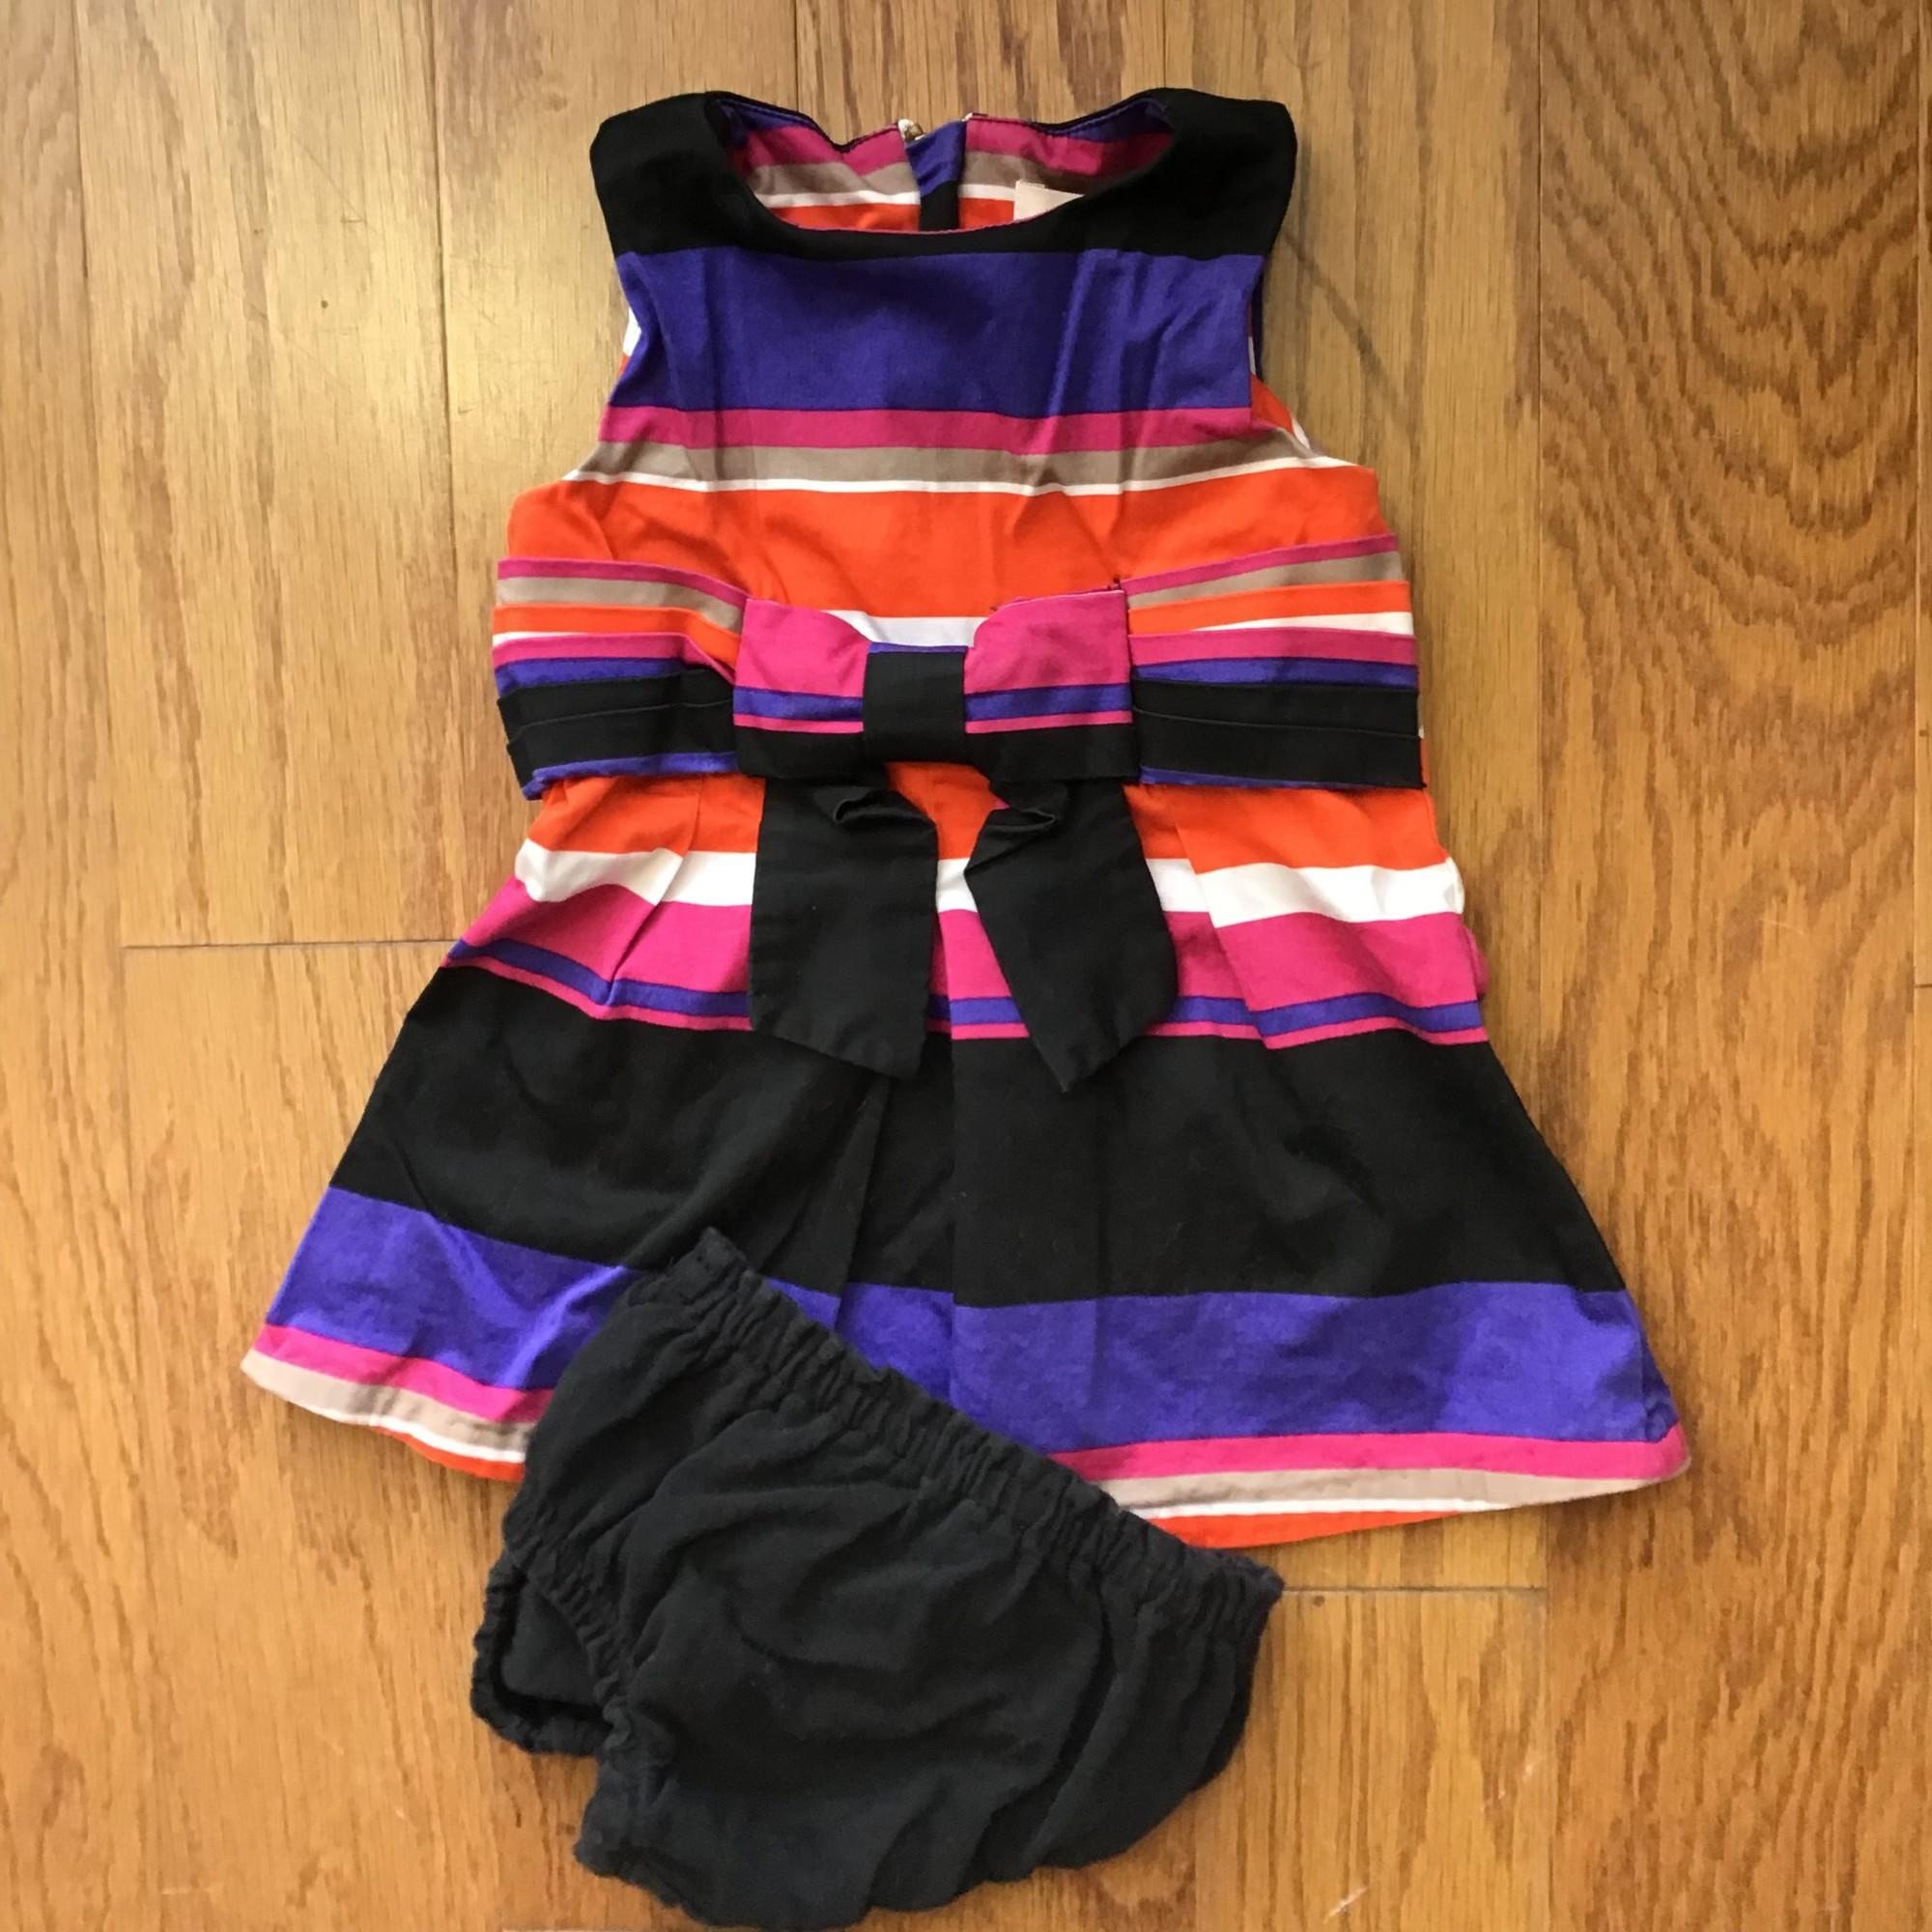 Kate Spade 2pc Dress, Multi, Size: 12m<br /> <br /> <br /> light wash wear<br /> <br /> ALL ONLINE SALES ARE FINAL. NO RETURNS OR EXCHANGES.